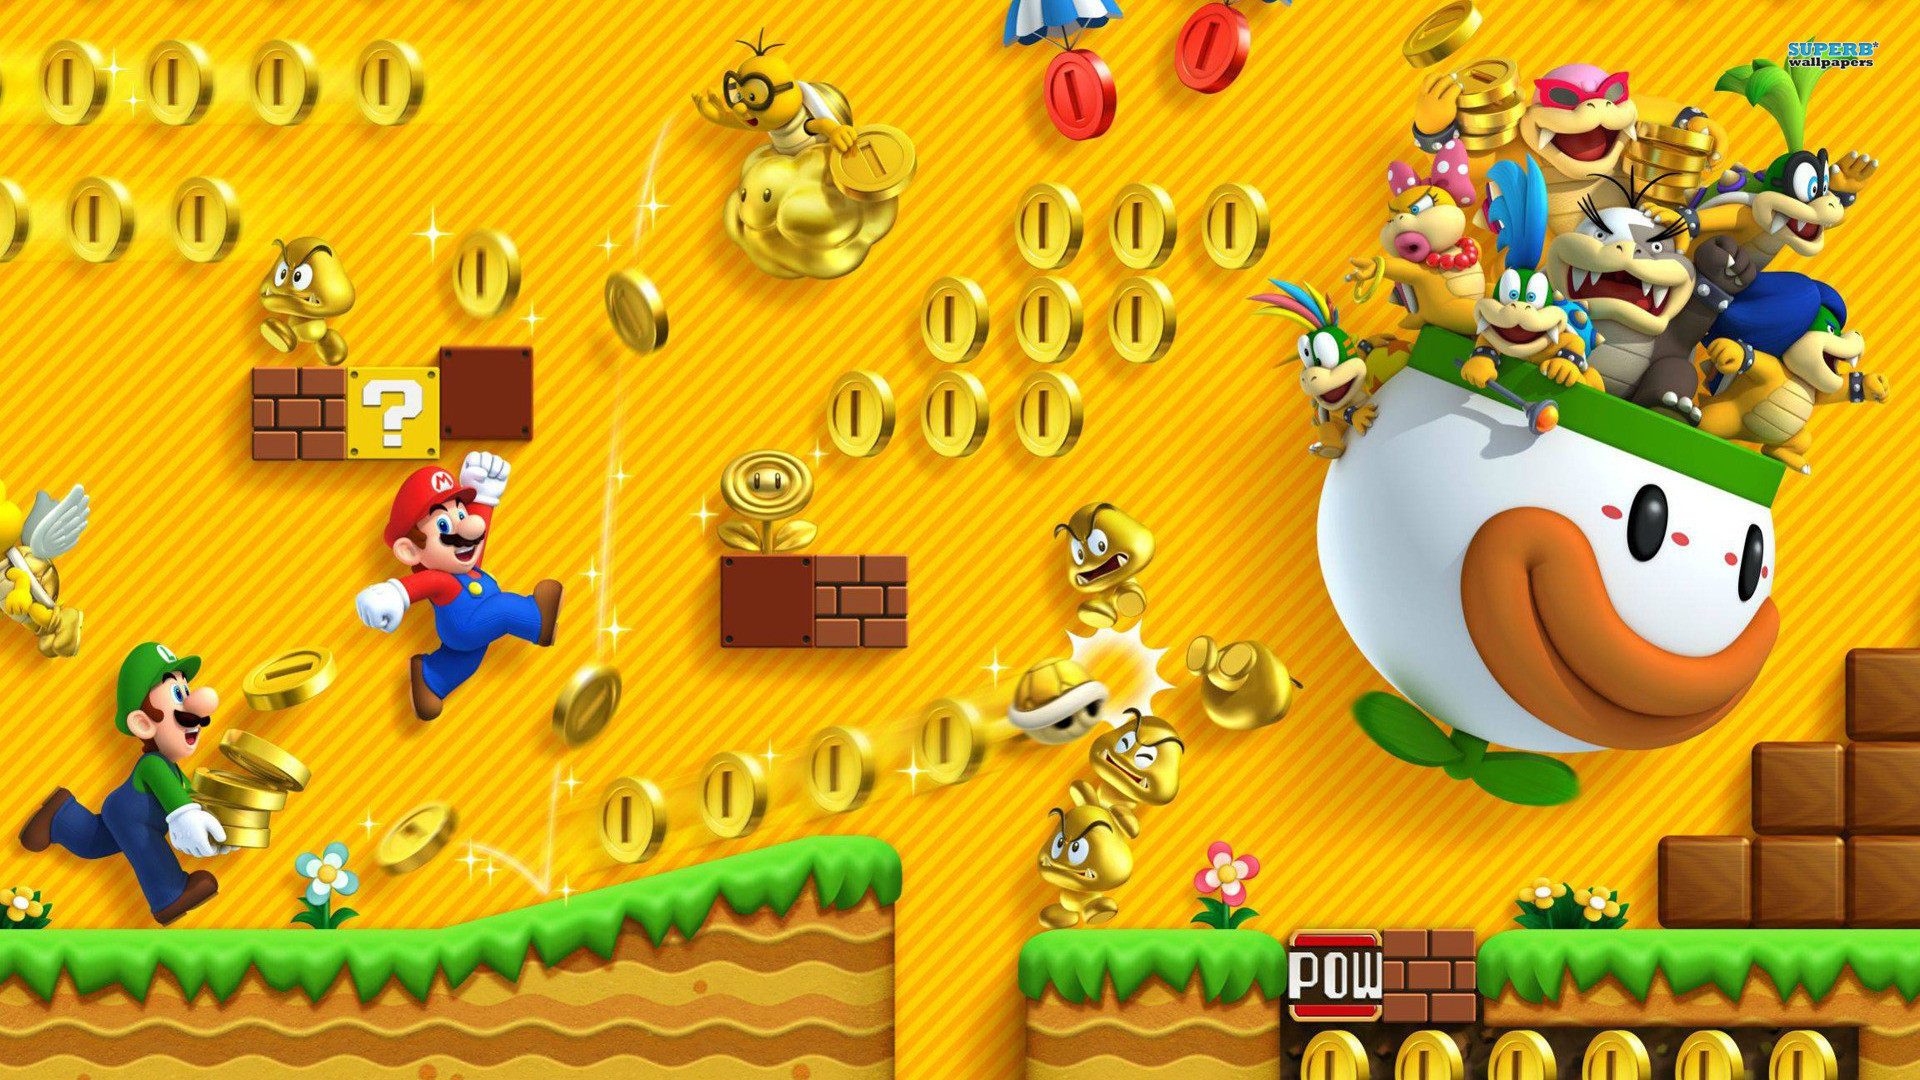 Super Mario Bros HD Wallpaper (70+ images)